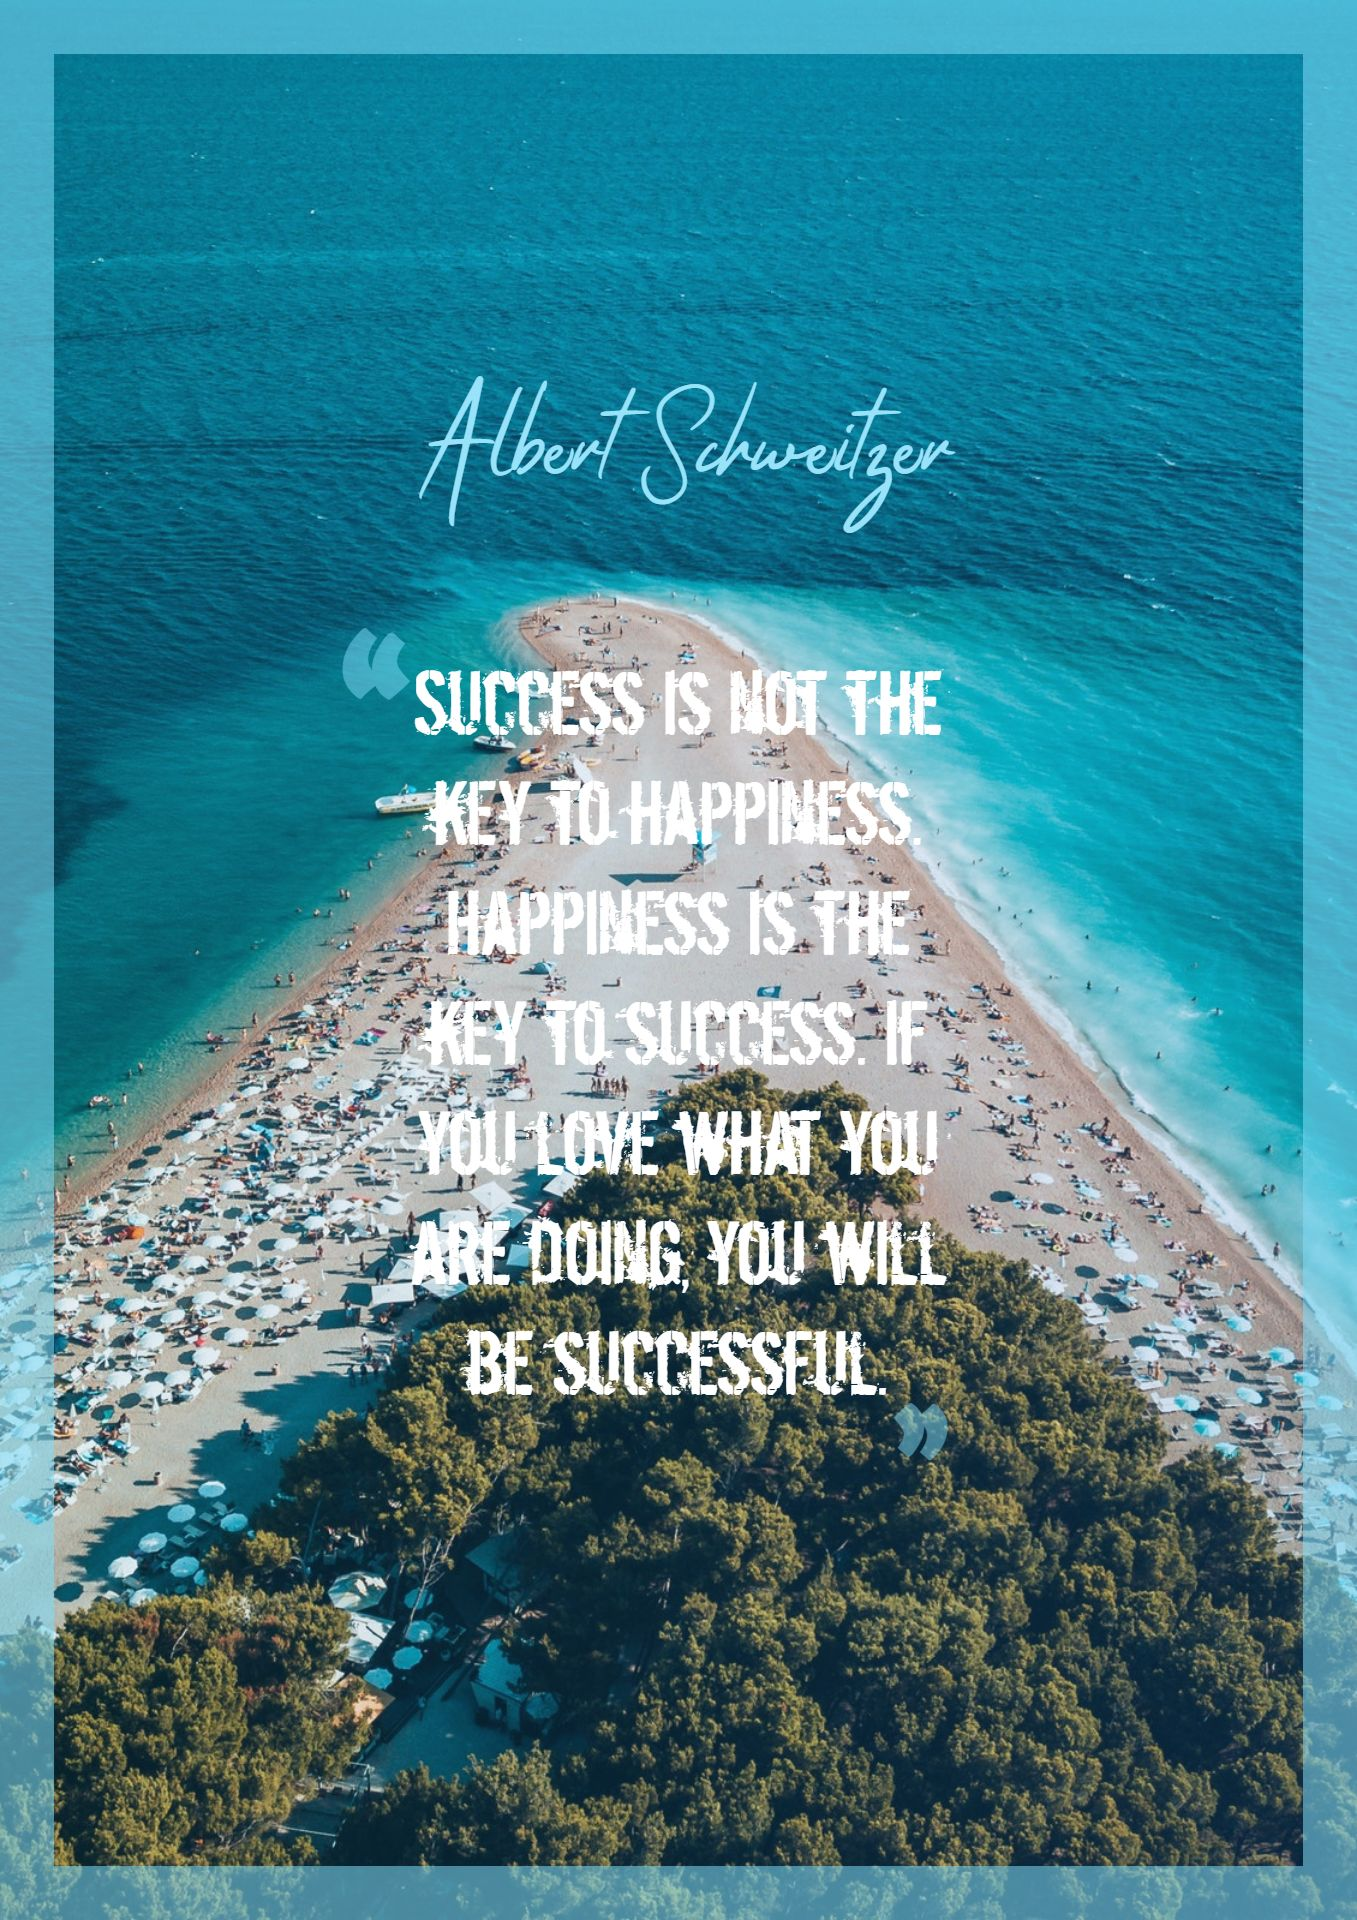 Quotes image of Success is not the key to happiness. Happiness is the key to success. If you love what you are doing, you will be successful.